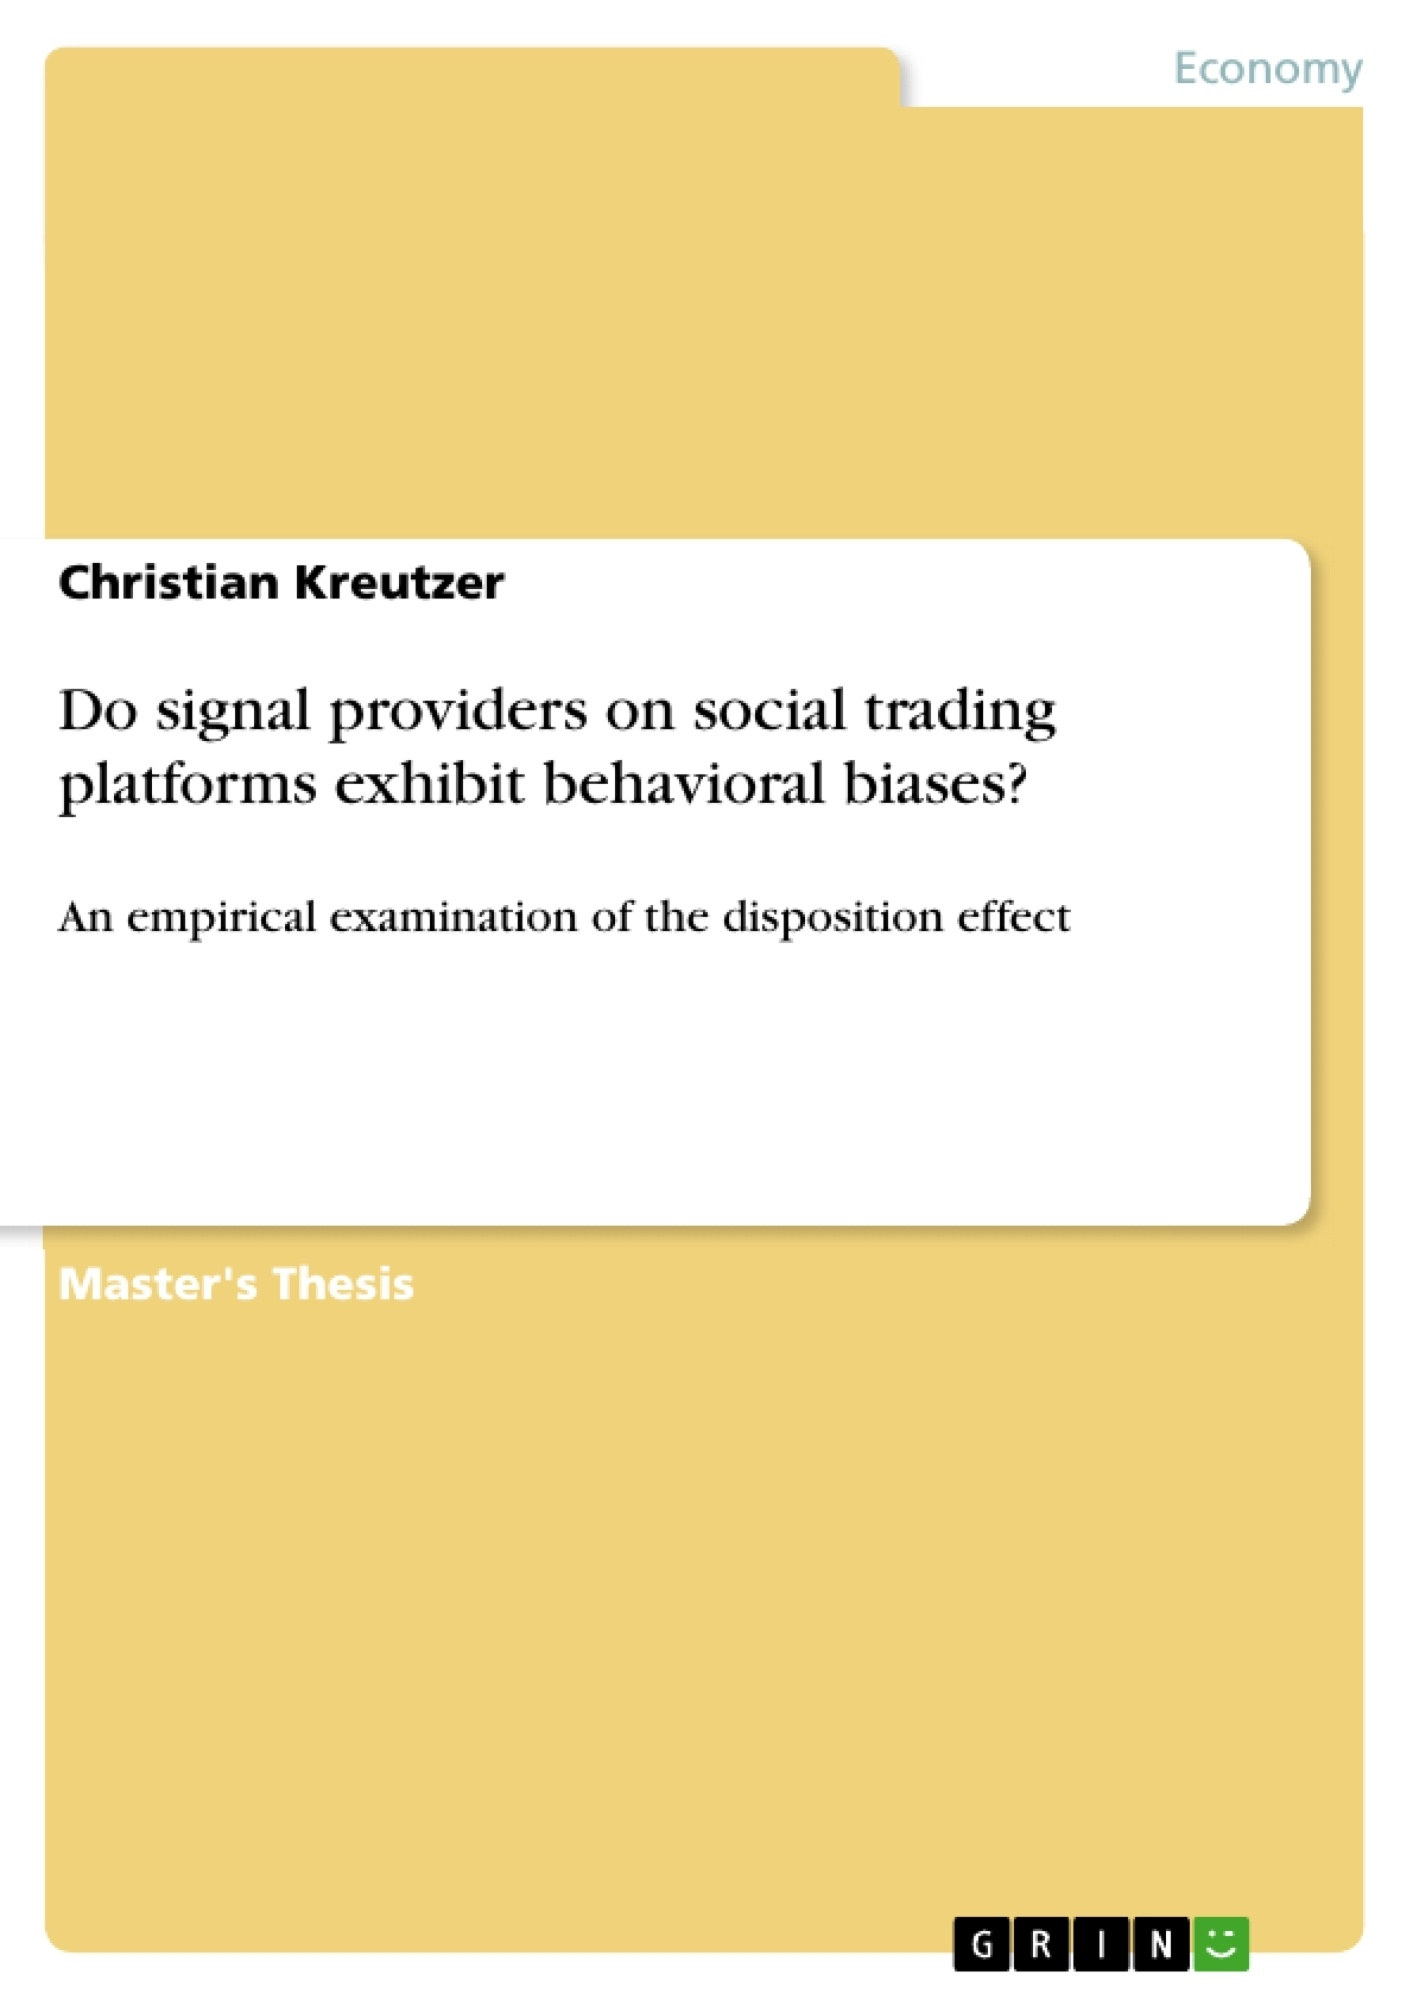 Title: Do signal providers on social trading platforms exhibit behavioral biases?